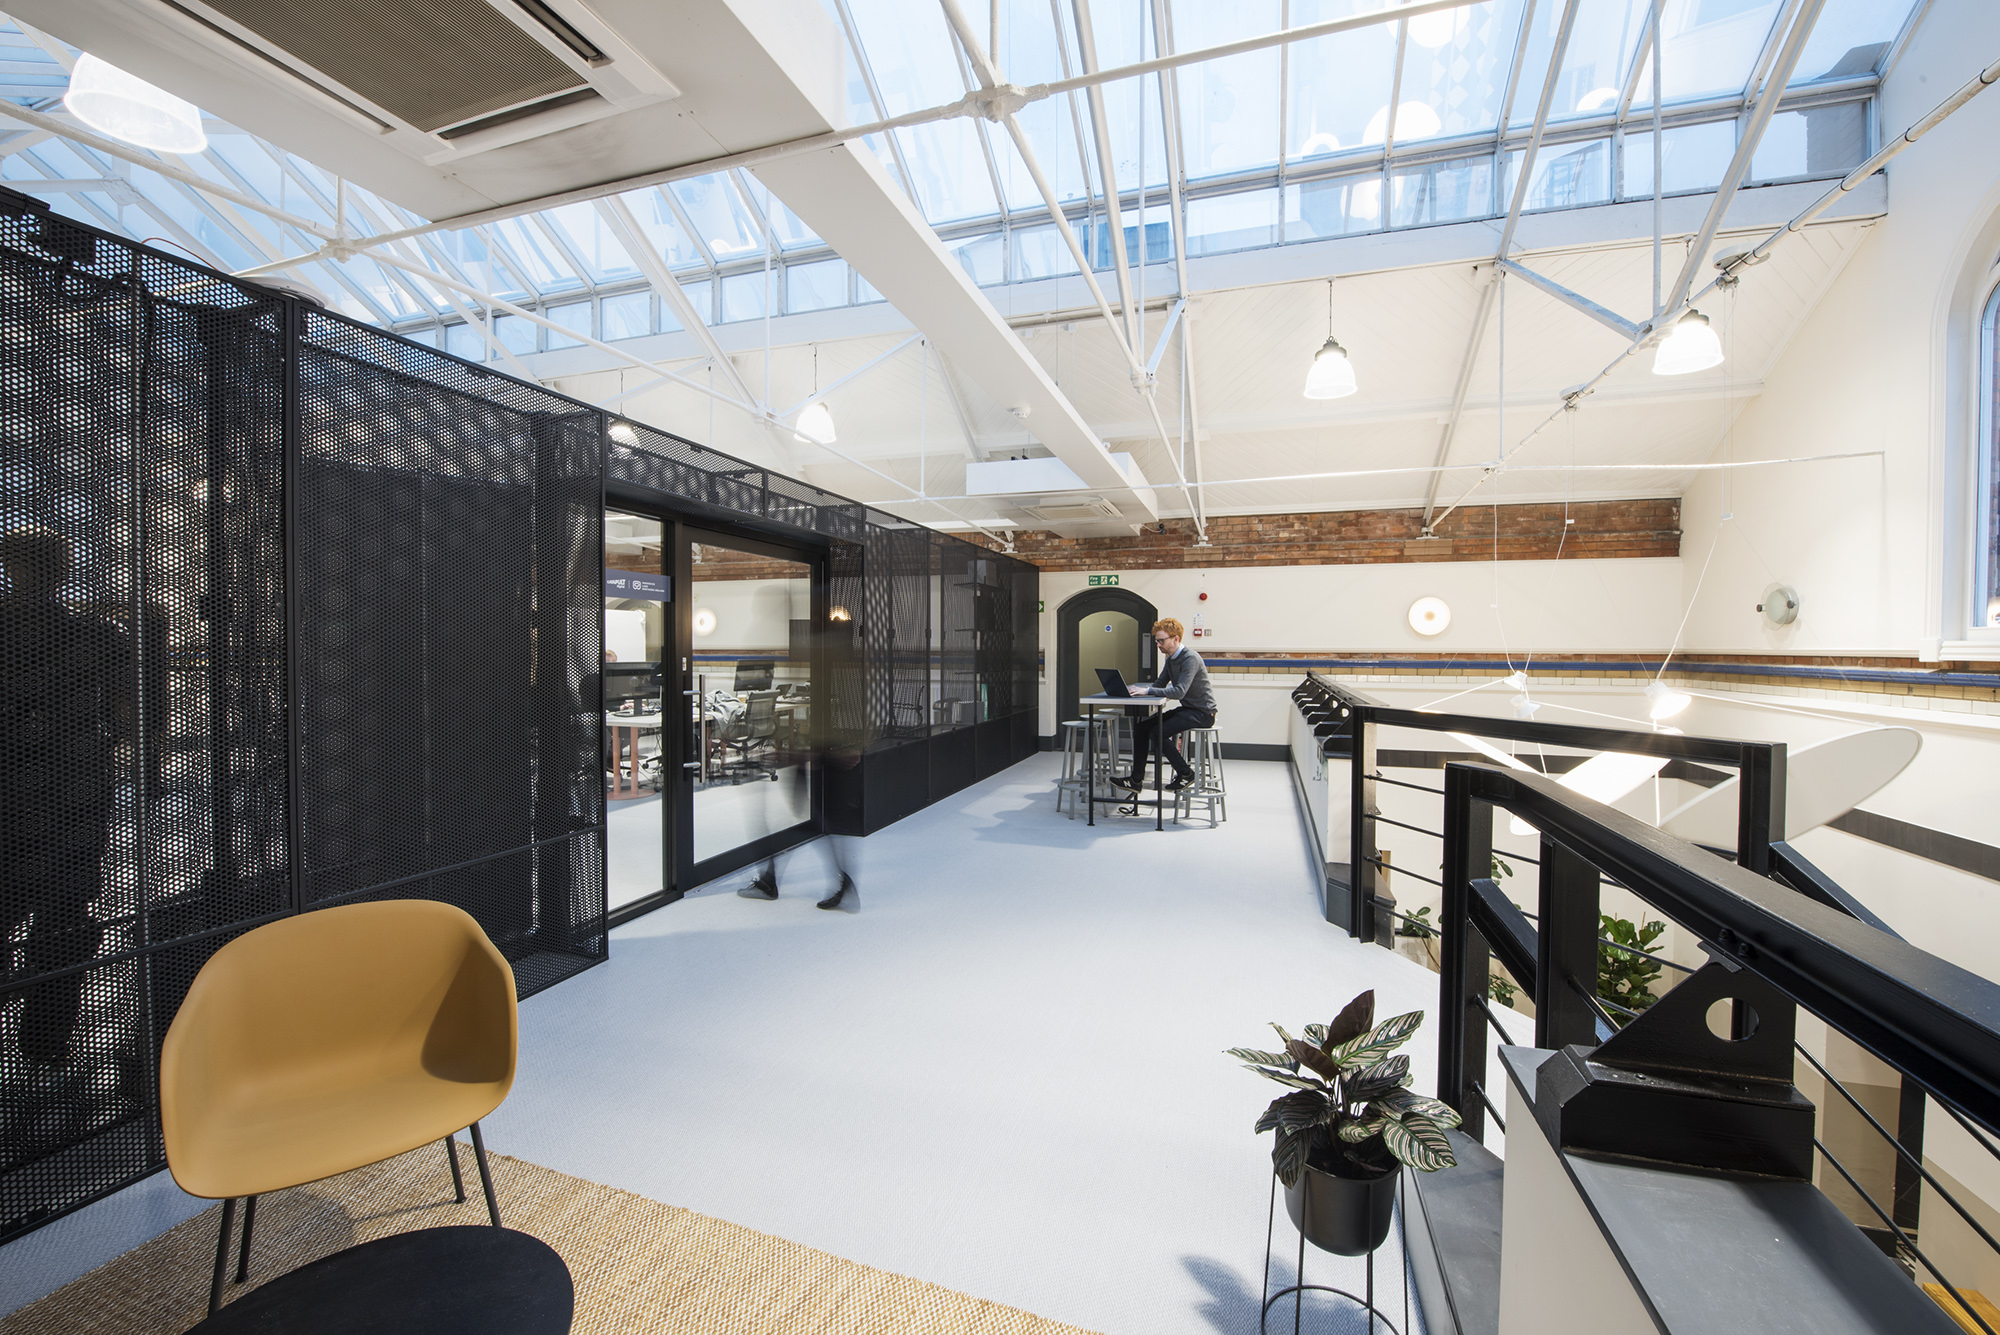 Chargifi have moved into Belfast's historic Ormeau Baths building.